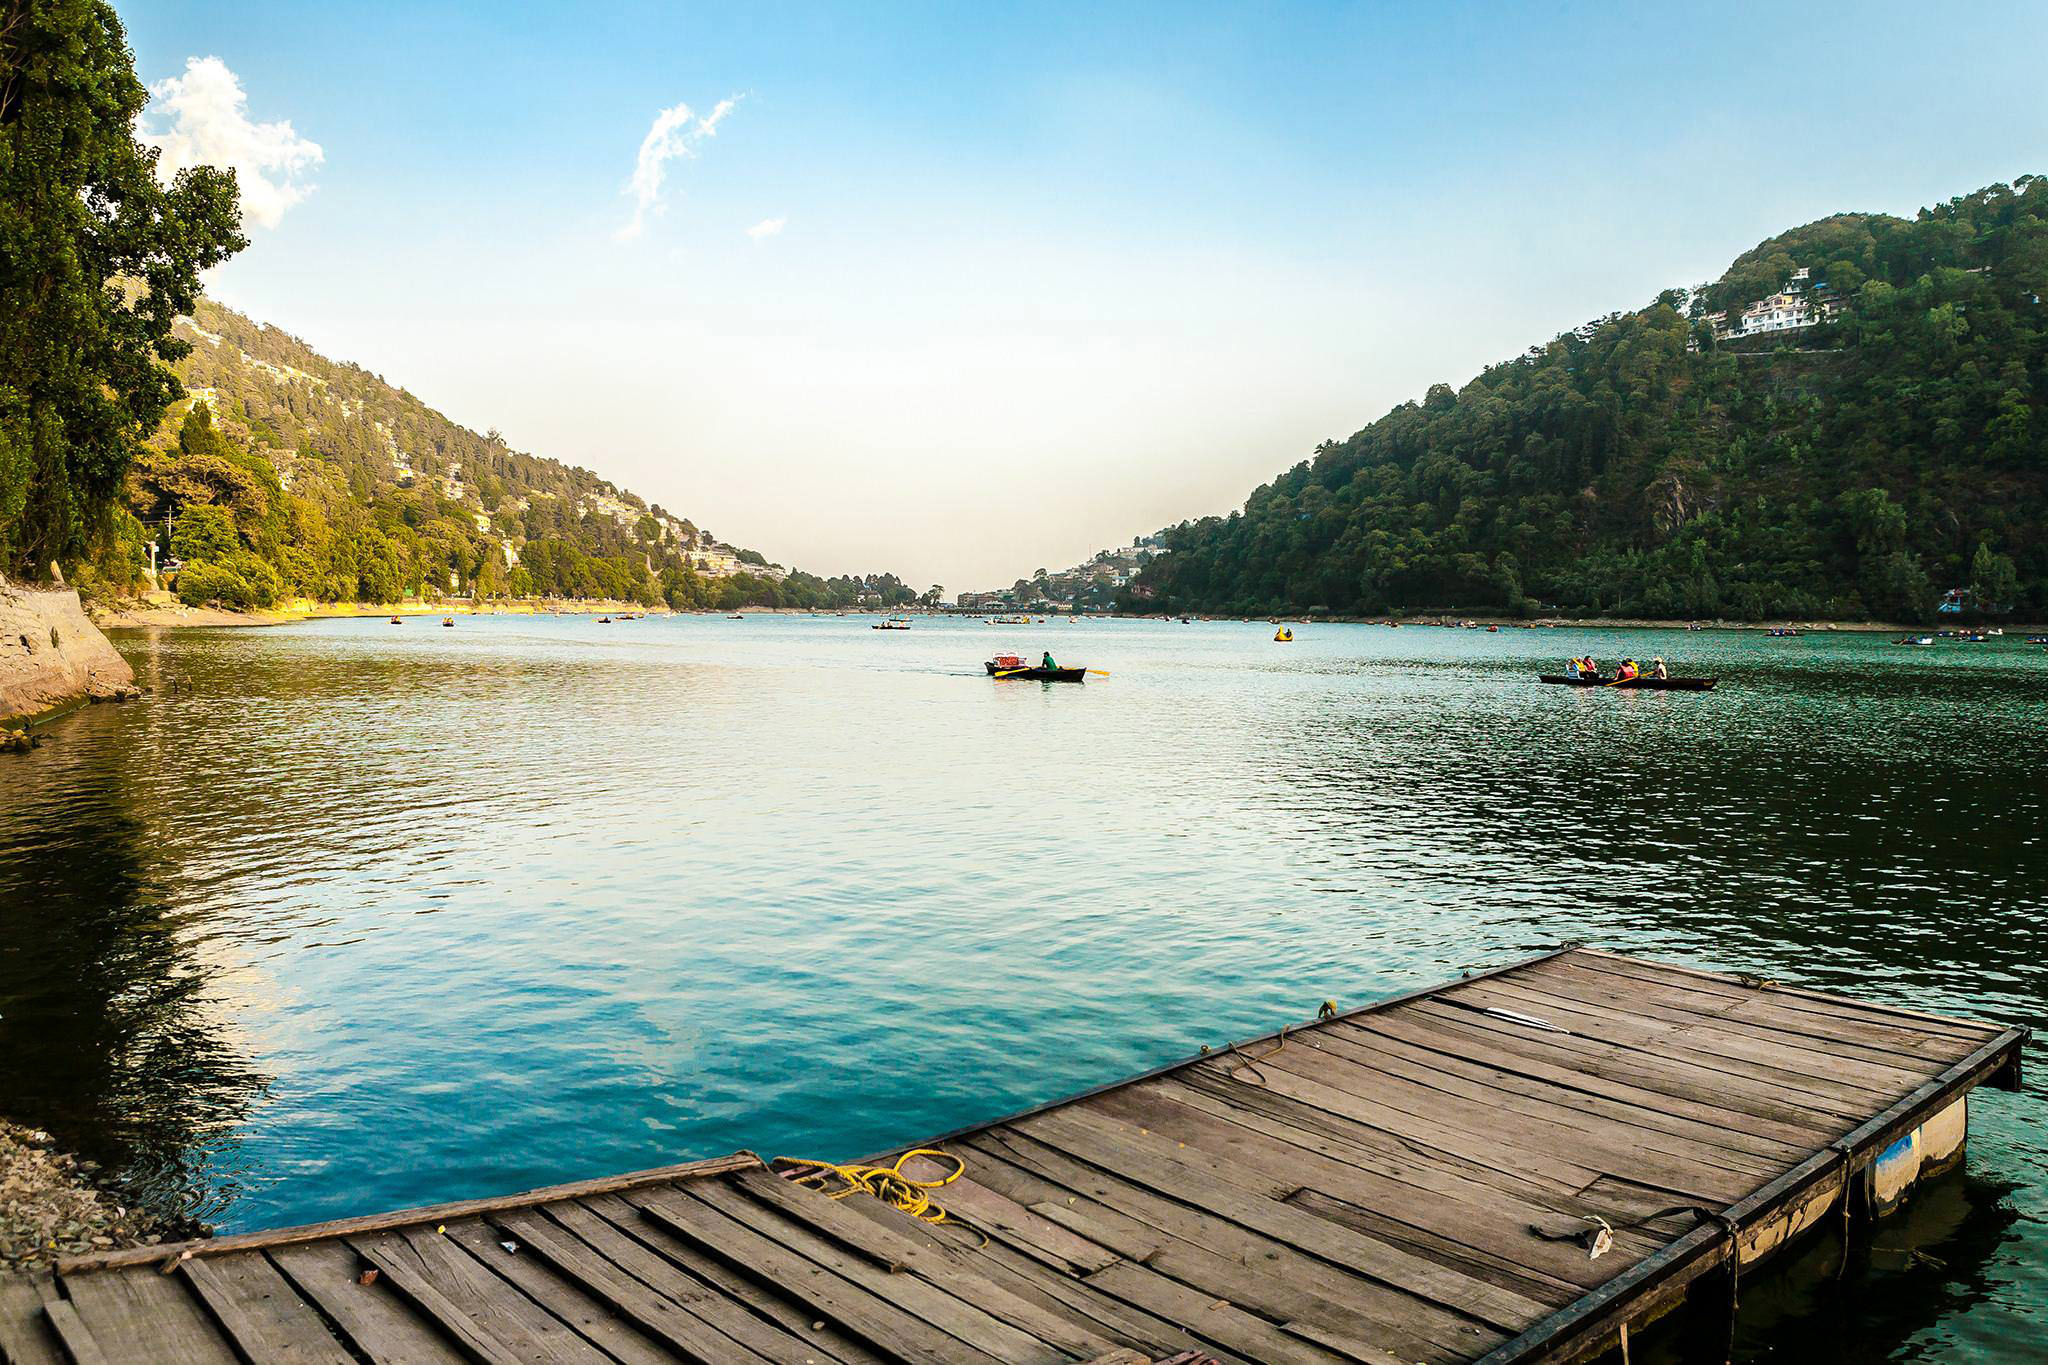 Boating at the Naini lake